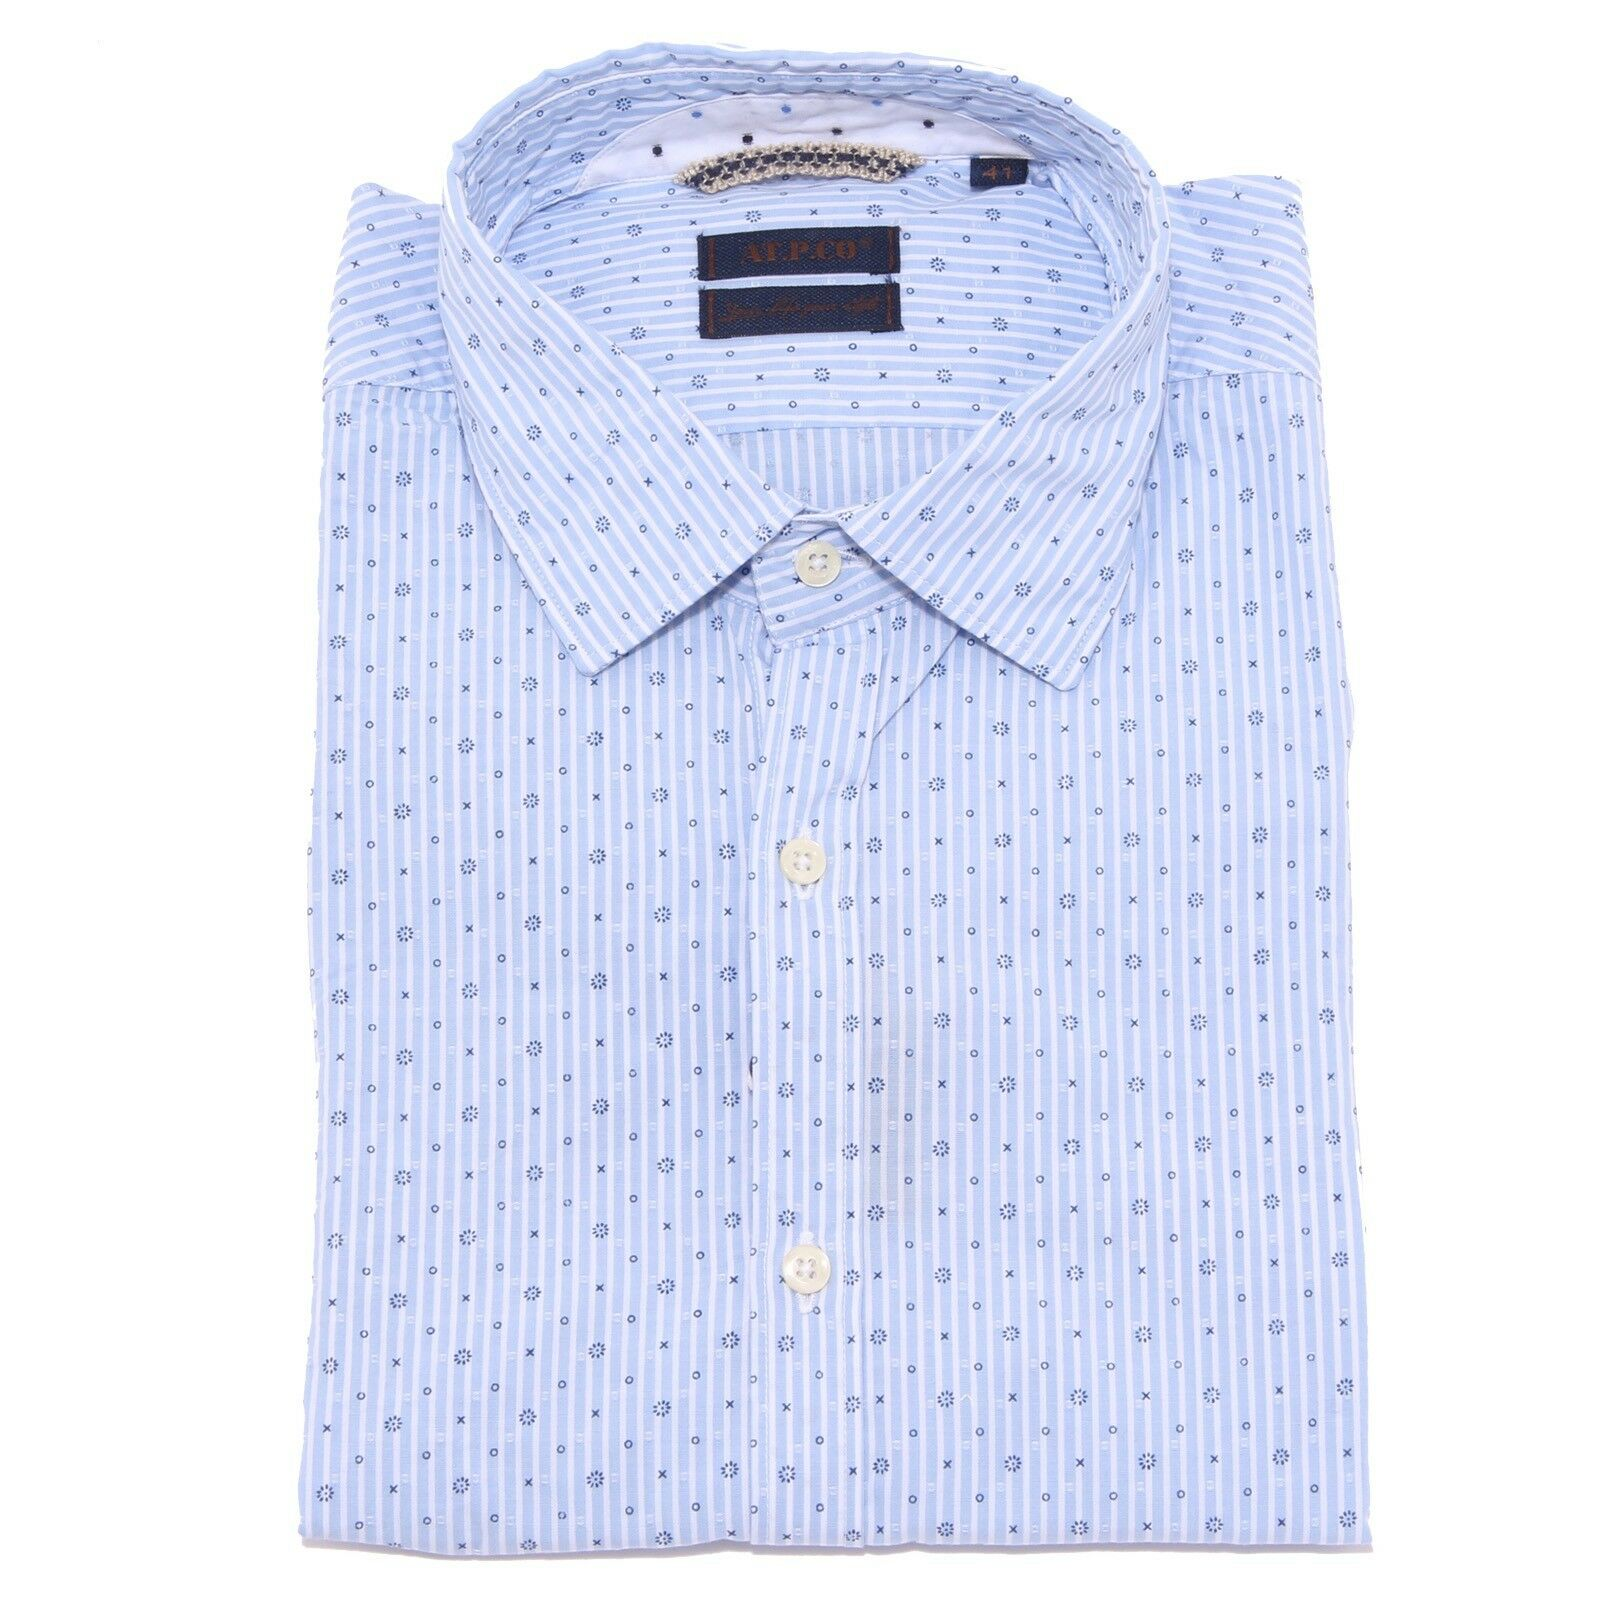 3140X camicia uomo AT.P.CO shirt Uomo blu cotton